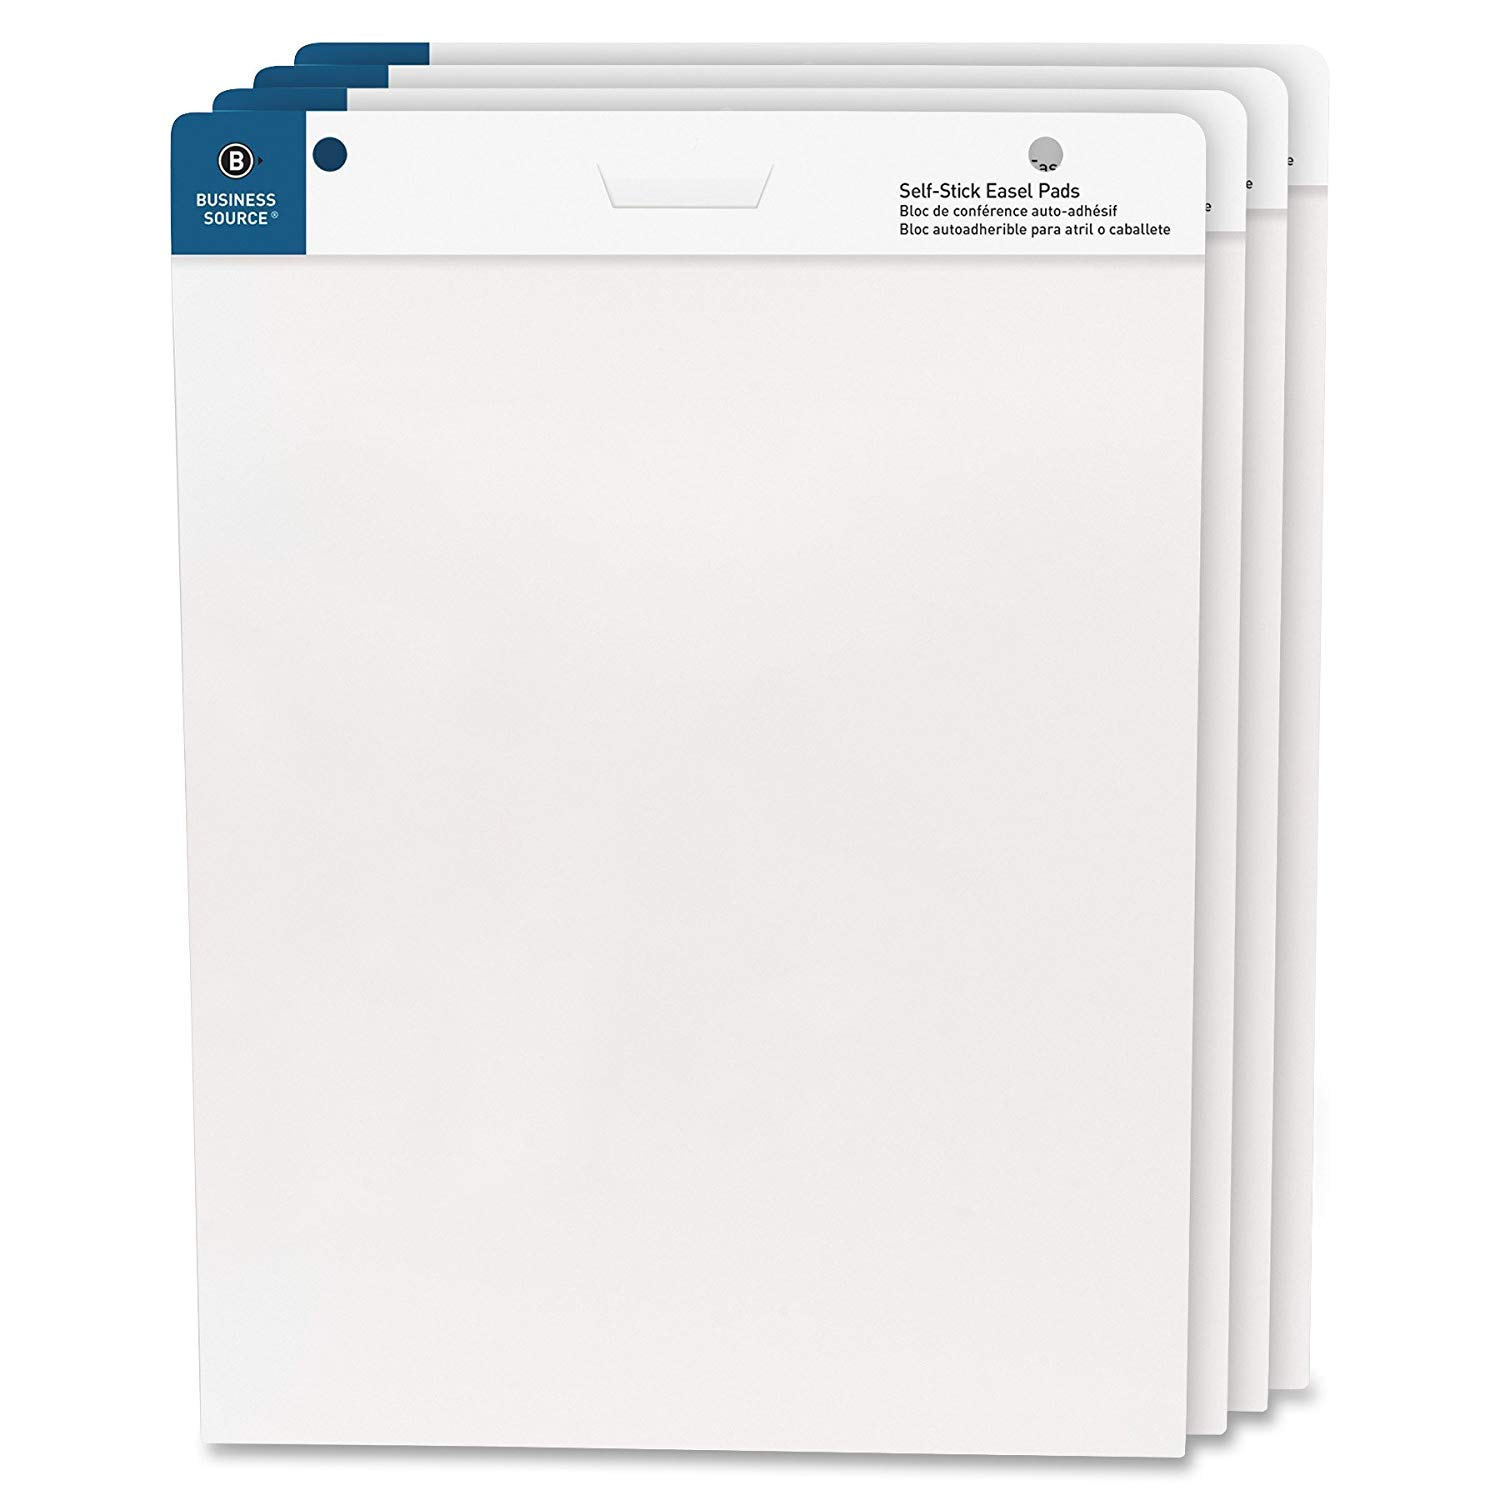 Business Source 25''x30'' Self-Stick Easel Pads, 4/Pack (38592) (2-Pack)